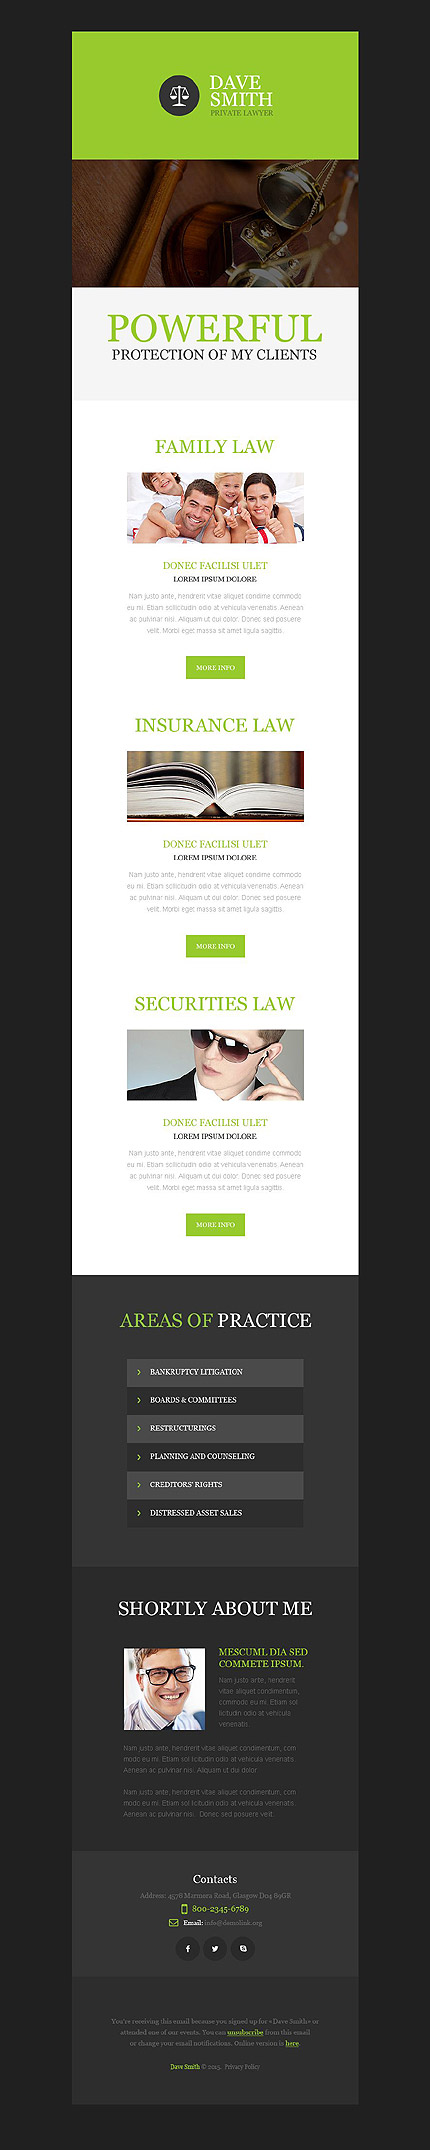 Template 53195 - Lawyer Responsive Newsletter Template – MailChimp Ready, Campaign Monitor Ready